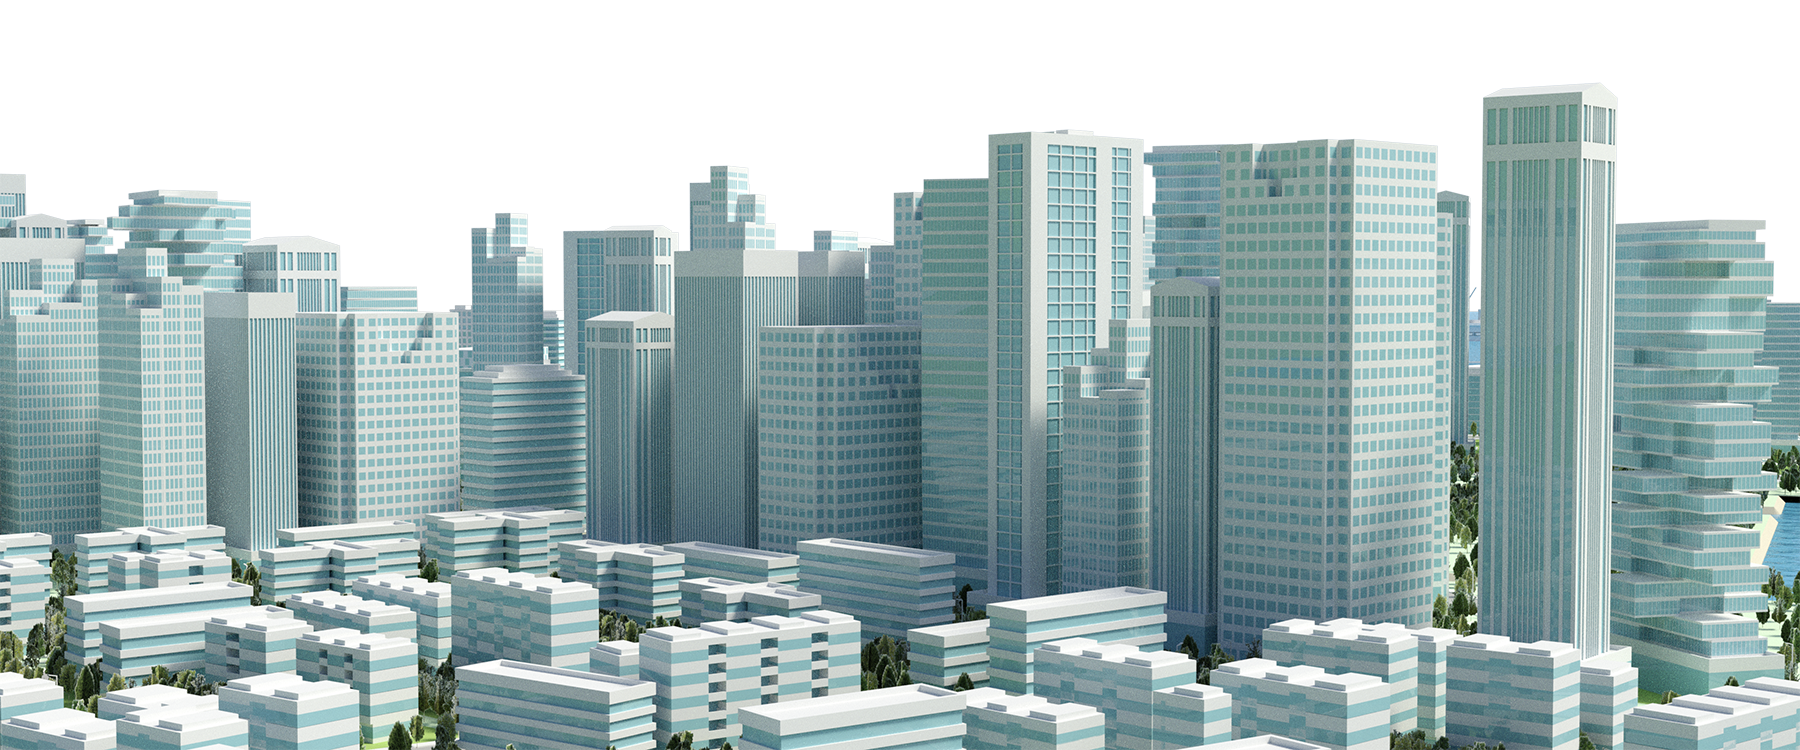 Building background png. City buildings image purepng